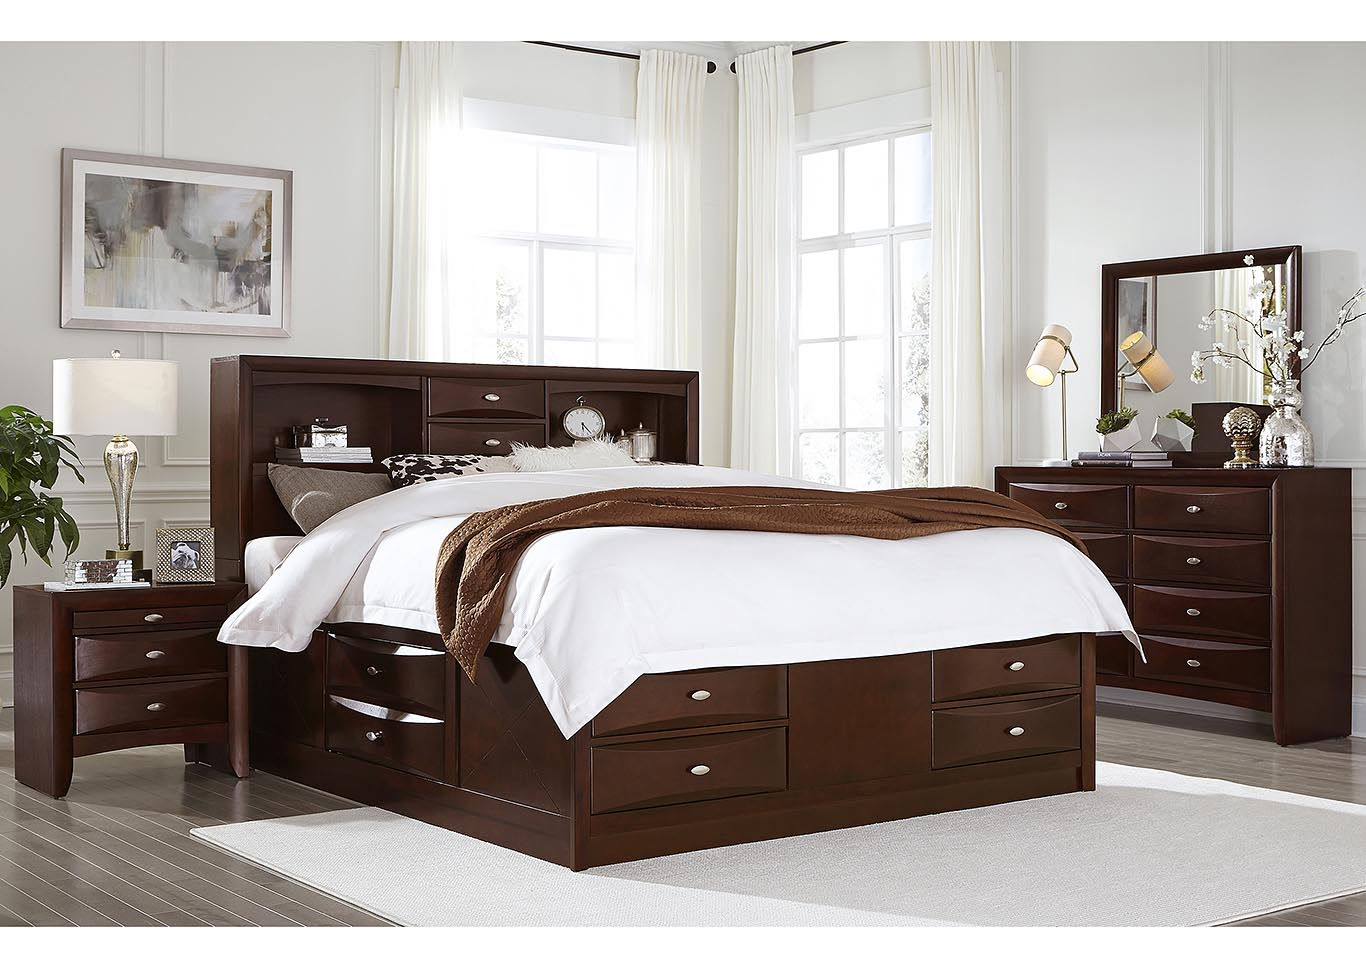 Furniture Overstock Overstock Furniture Langley Park Catonsville Alexandria